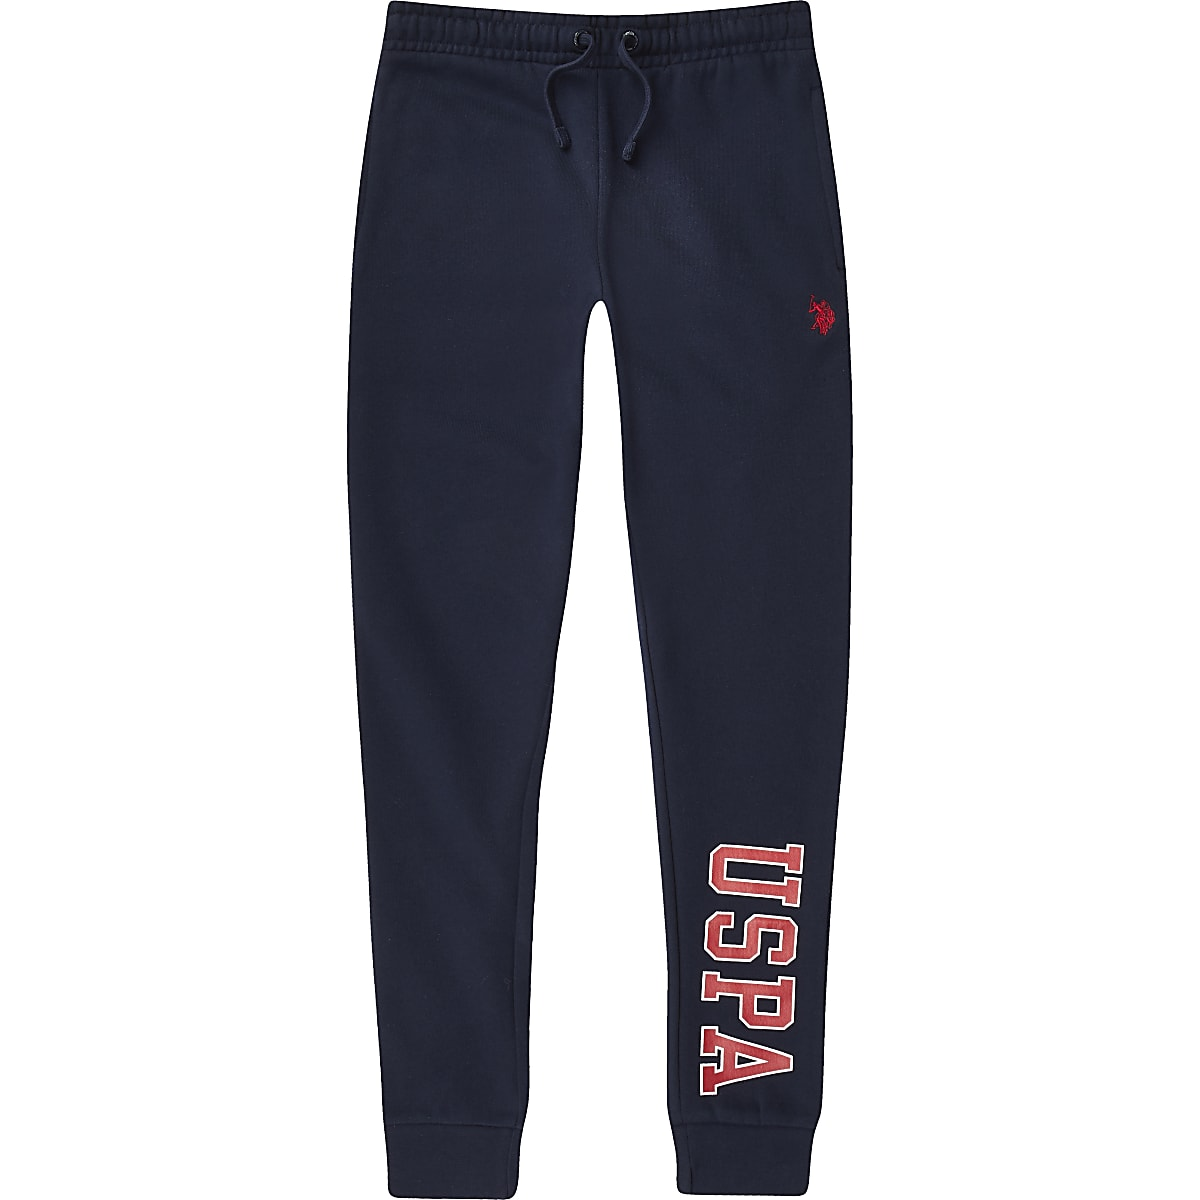 Boys U.S. Polo Assn. navy joggers